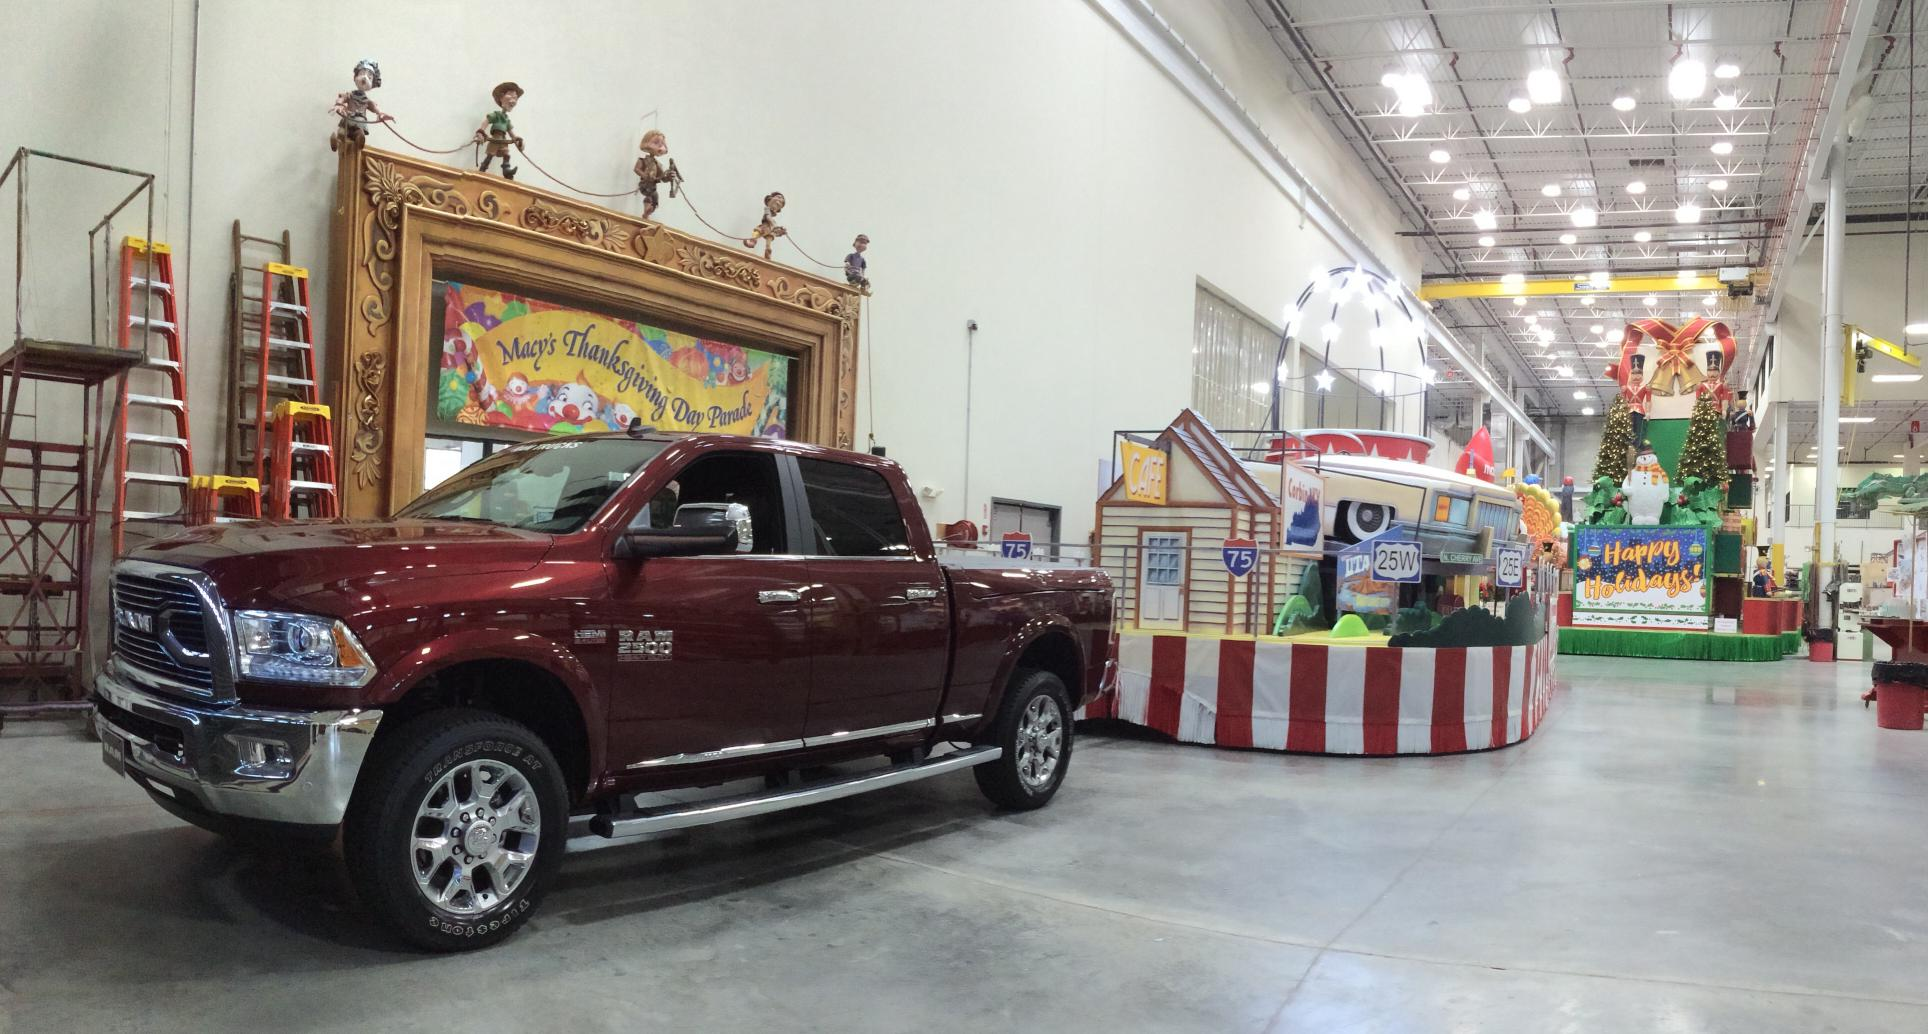 Ram trucks joins Thanksgiving Day tradition